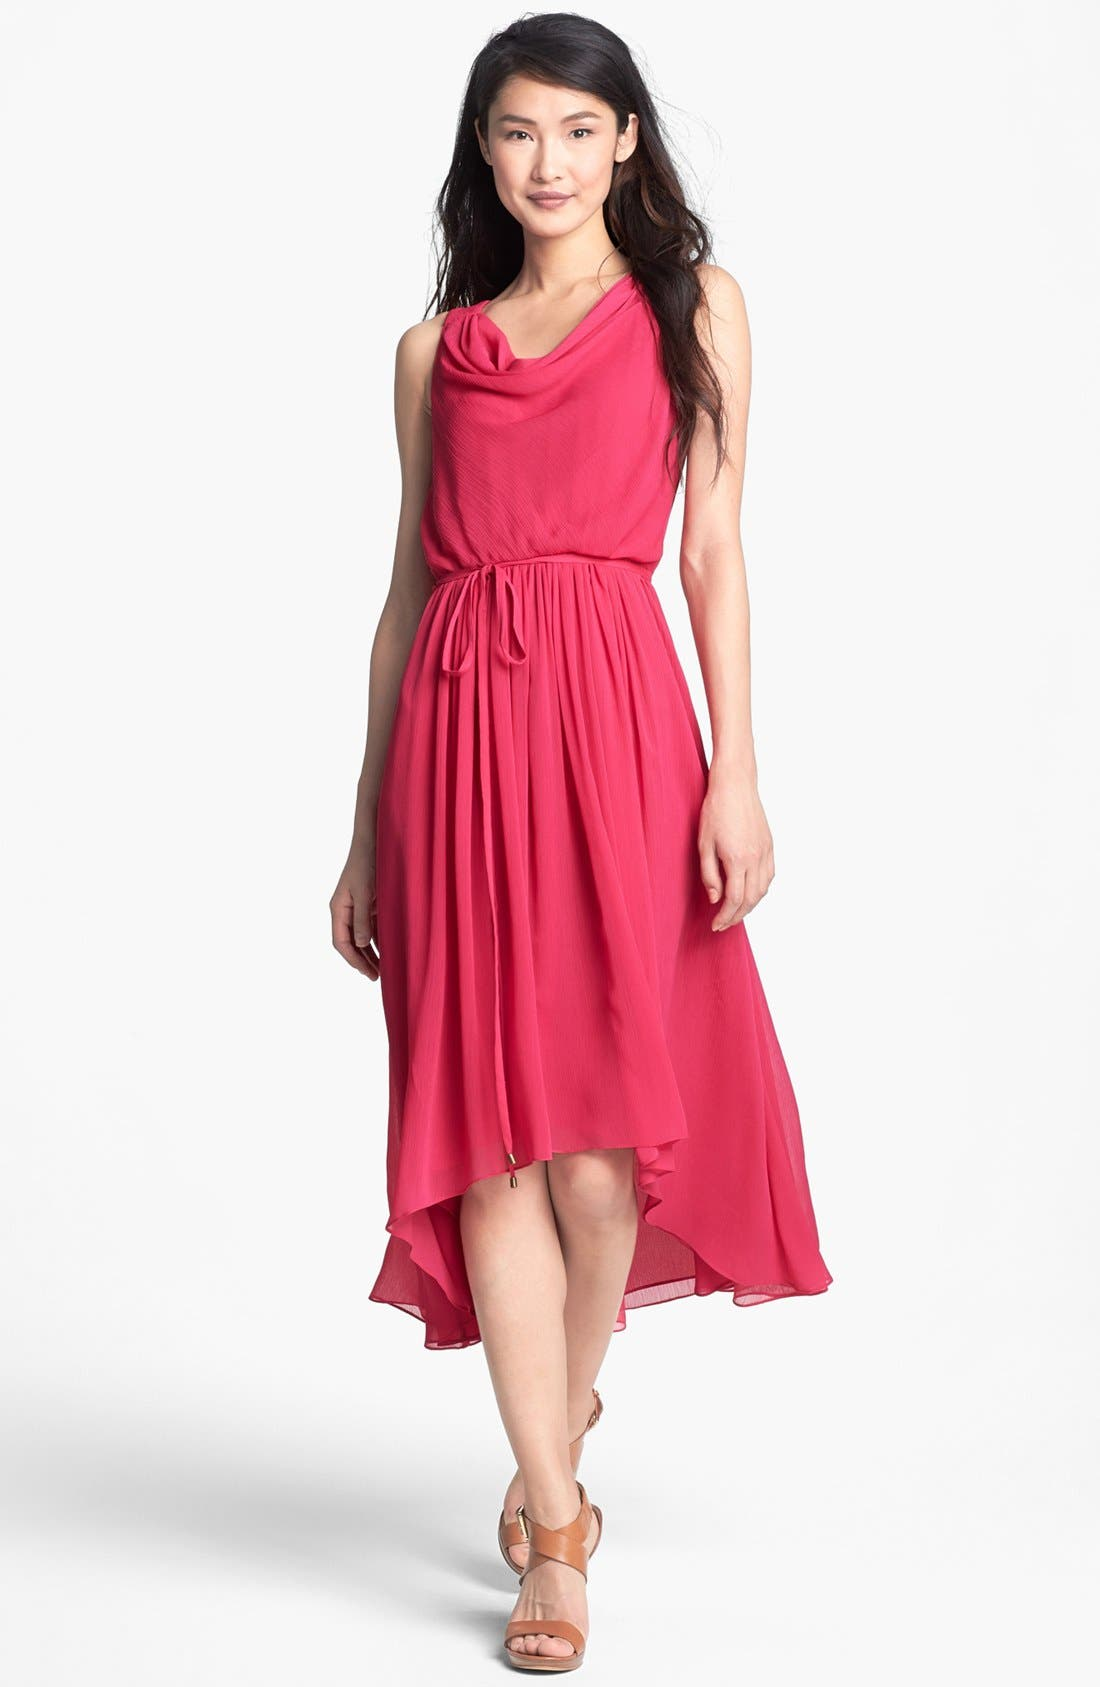 Alternate Image 1 Selected - Adrianna Papell High/Low Crinkled Chiffon Dress